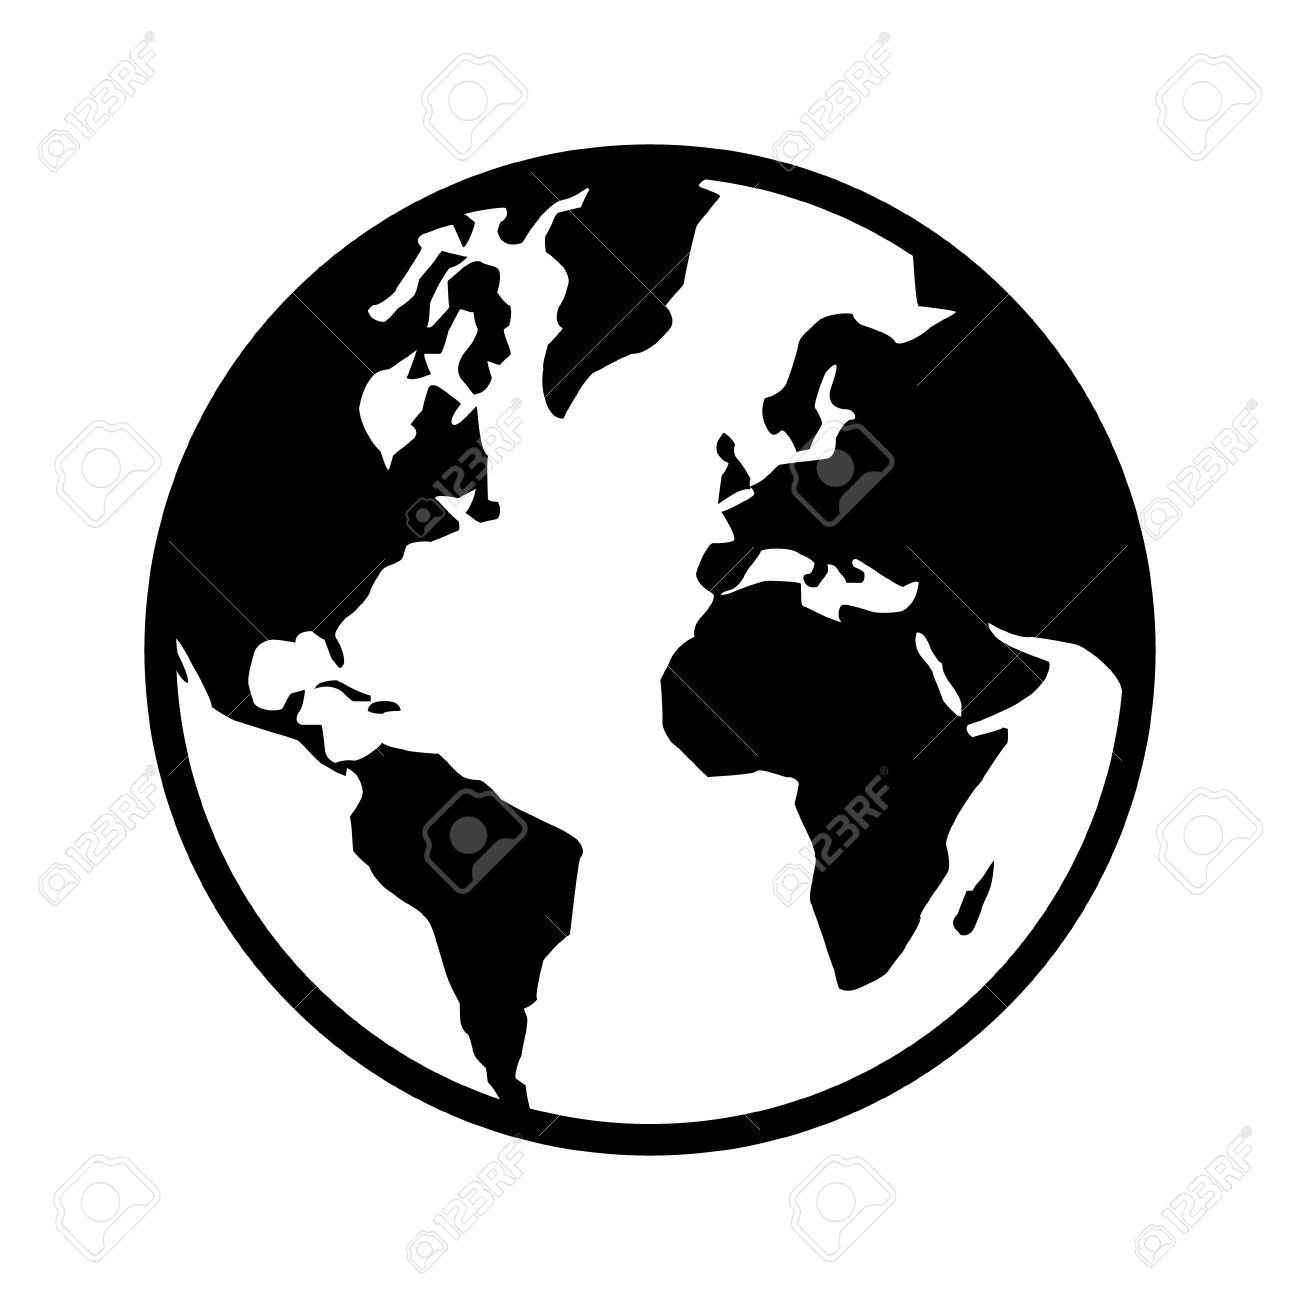 World silhouette vector at getdrawings free for personal use 1300x1300 black world map icon stock vector hunthomas 132803244 best of gumiabroncs Images